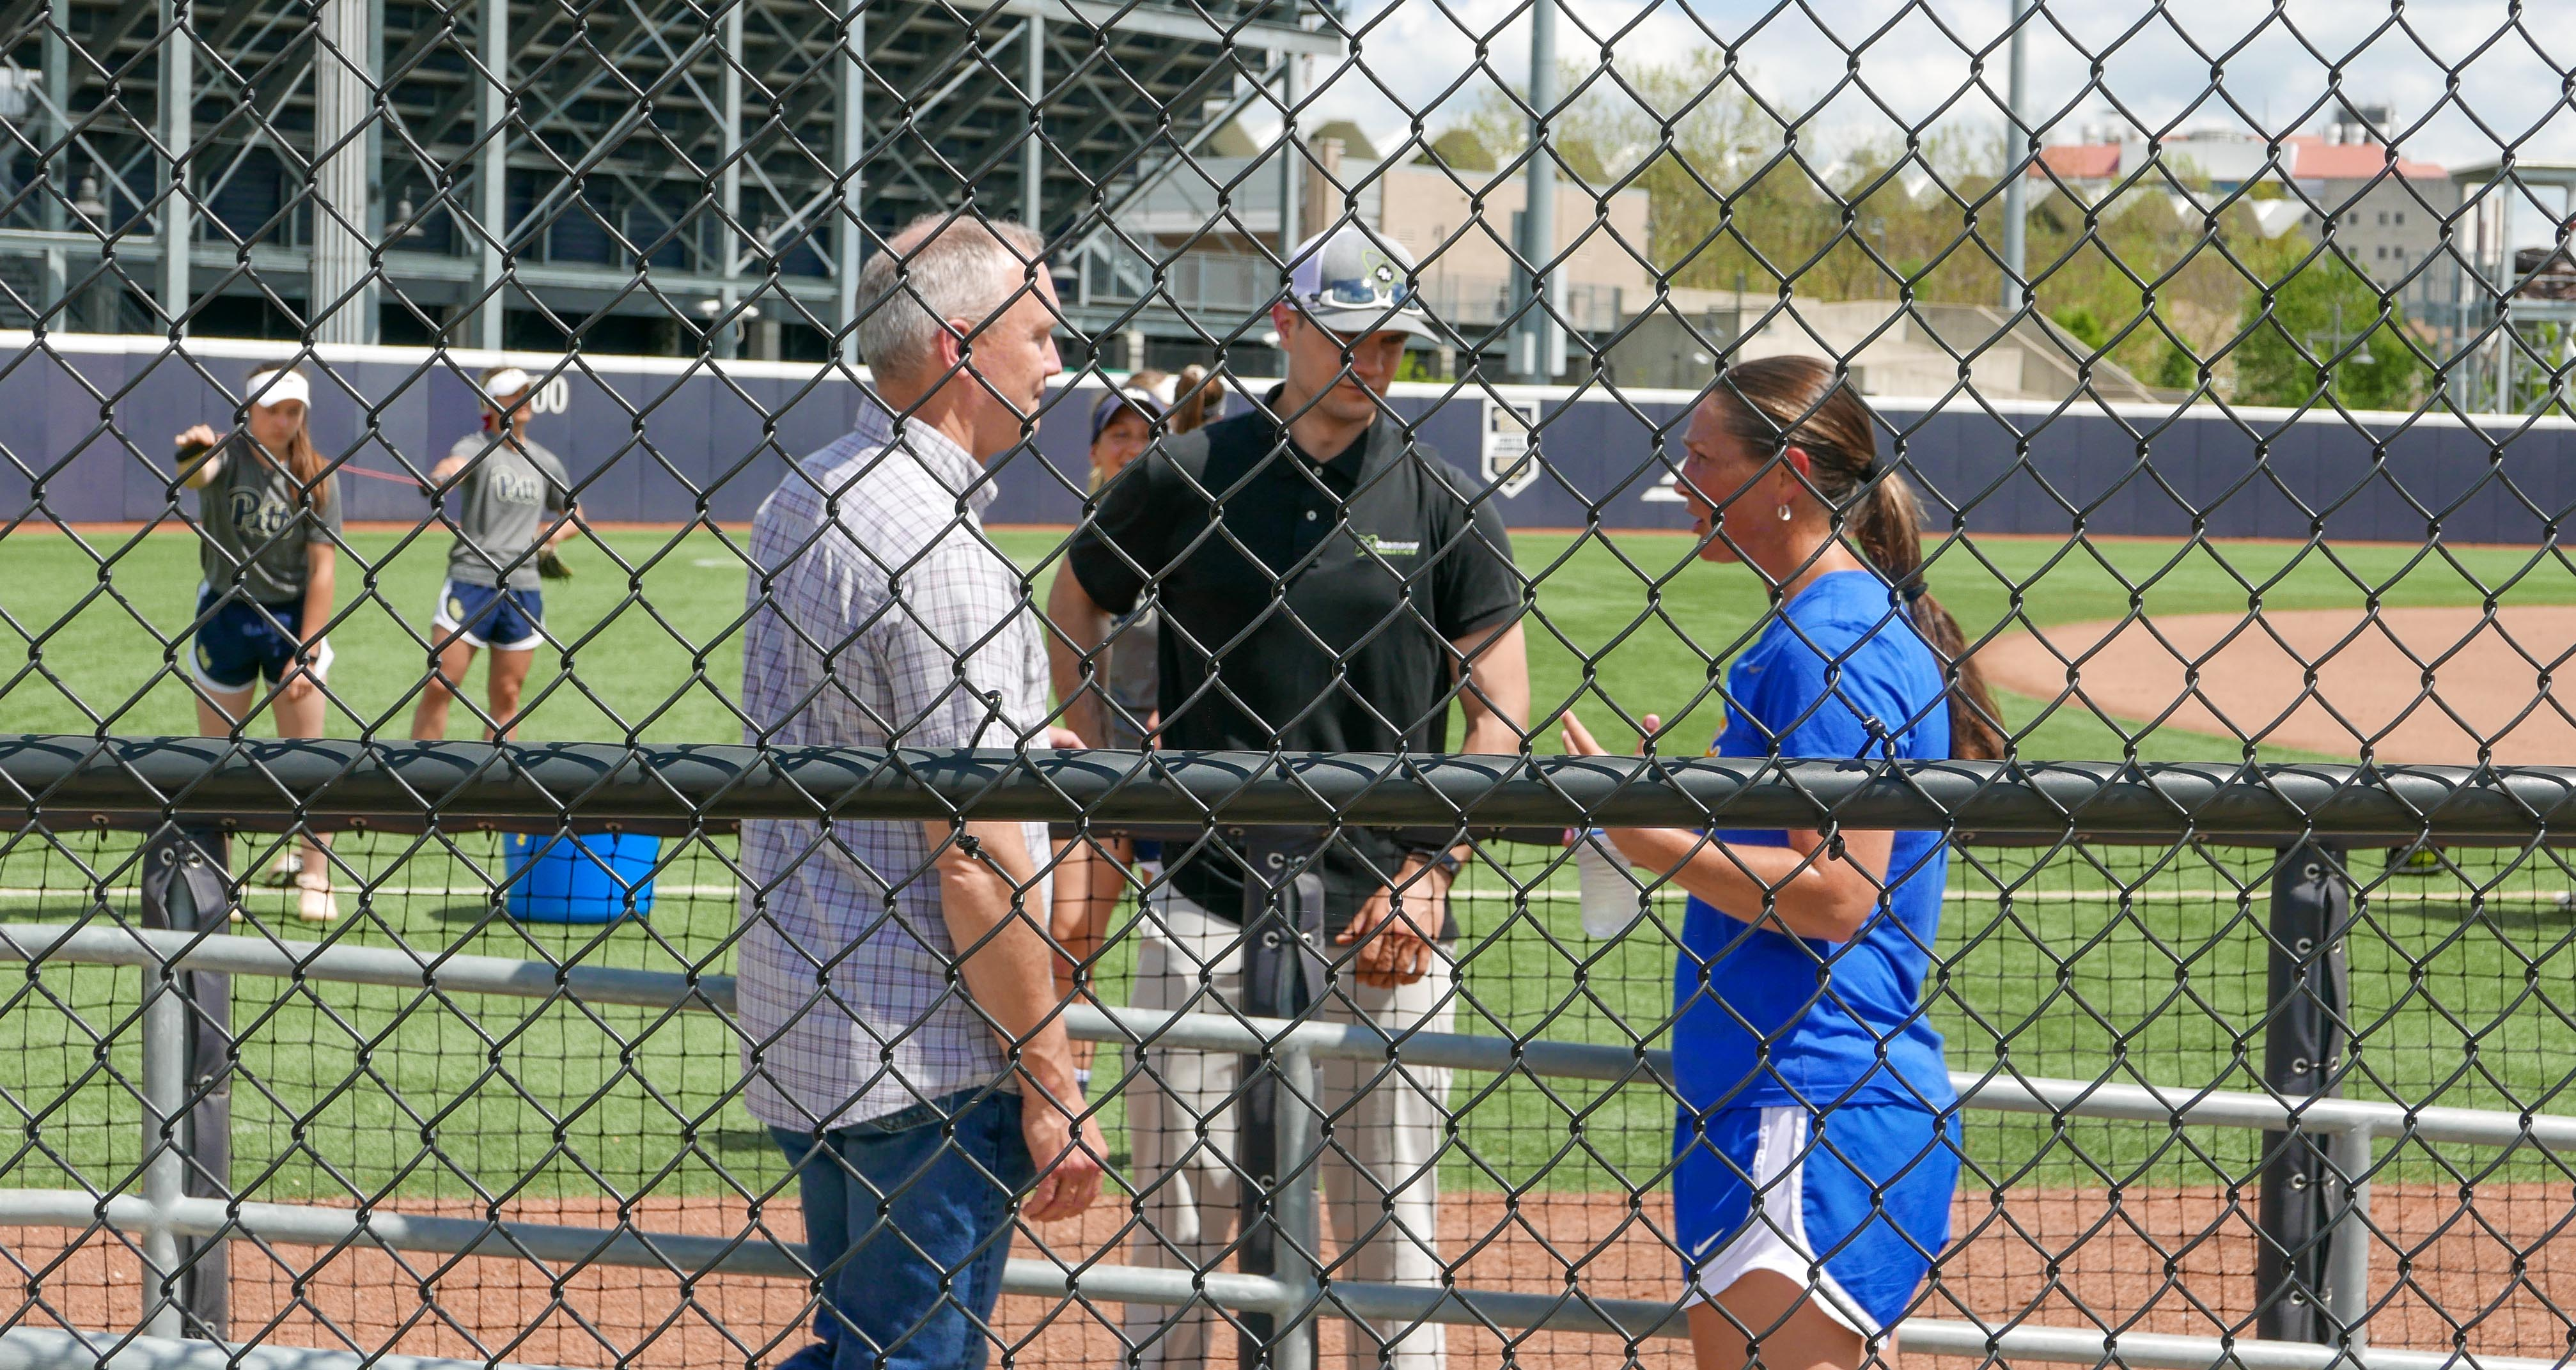 Clarks meeting with softball coach on field